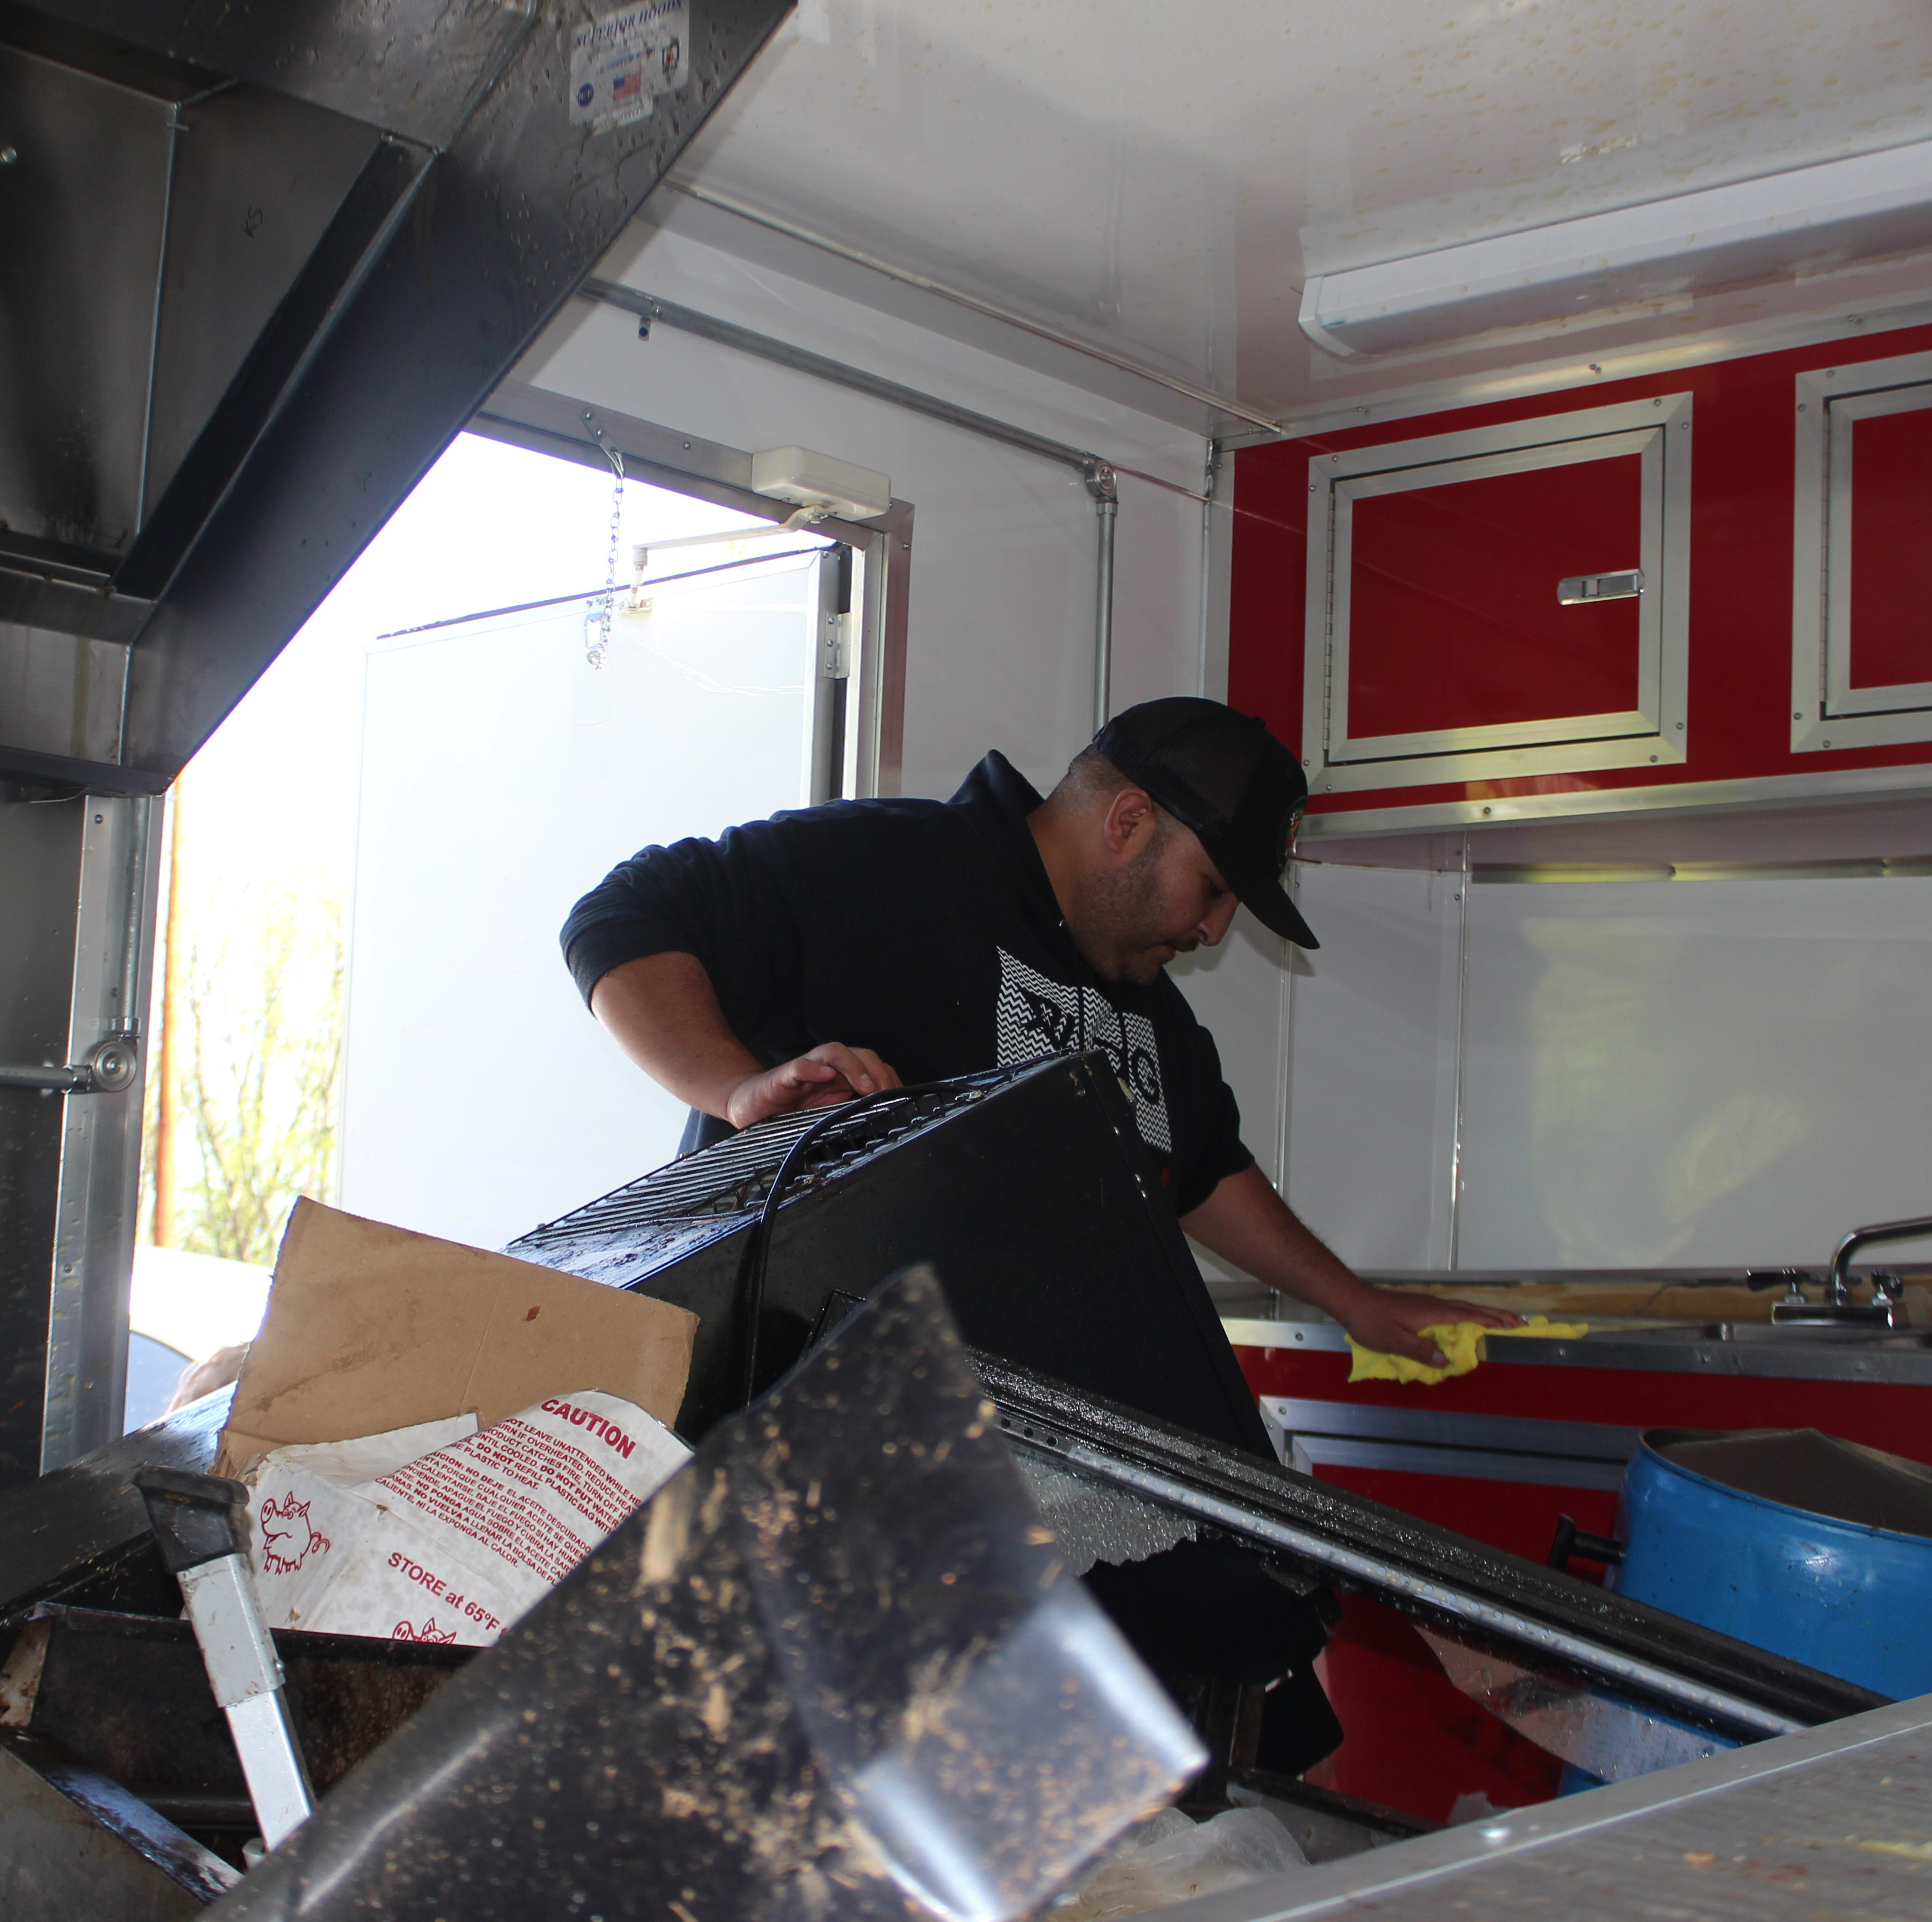 How a car wreck turned a Clarksville couple's taco truck and their dreams upside down